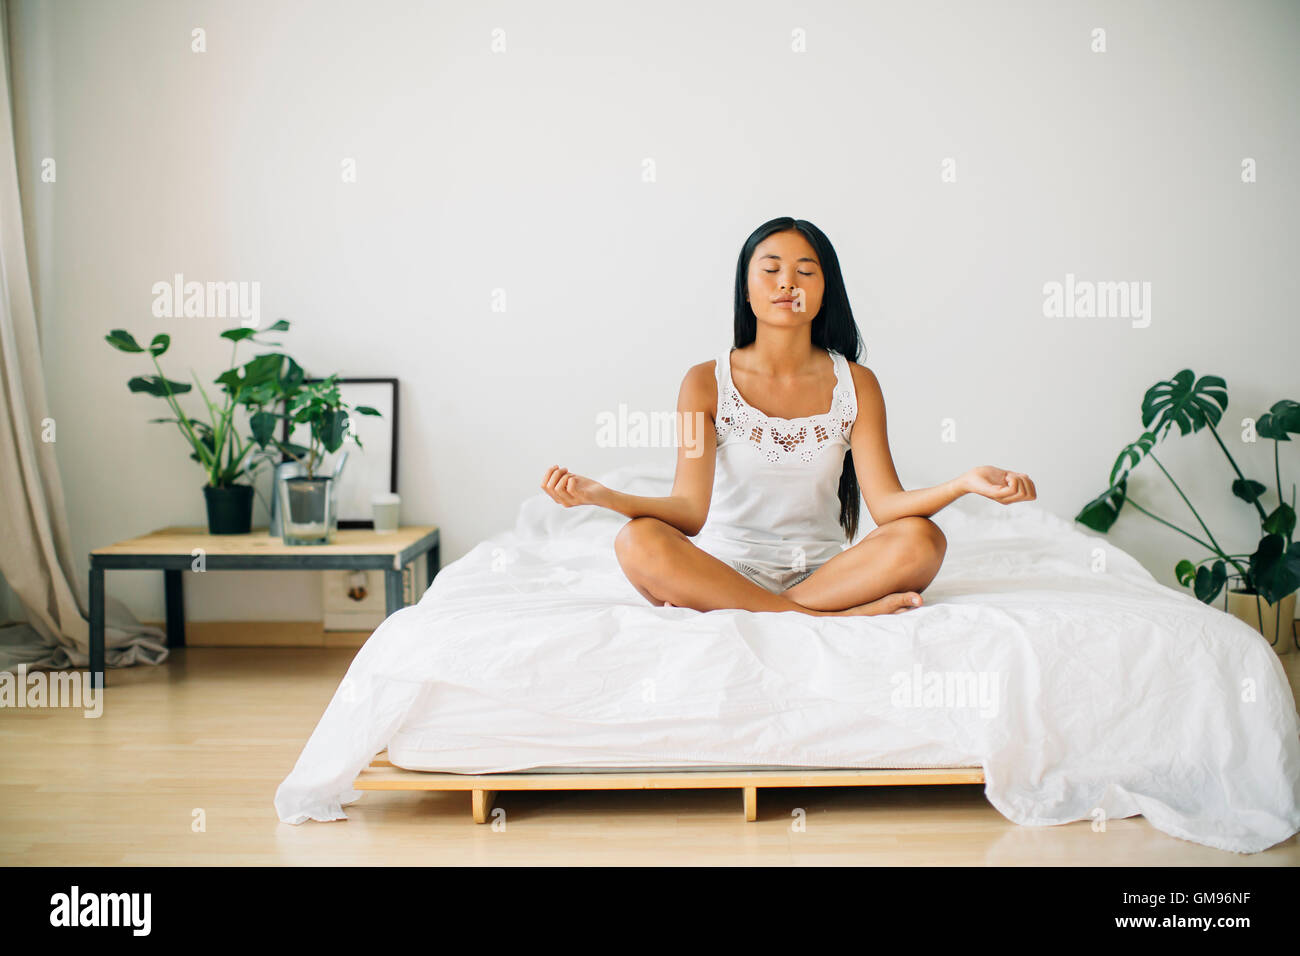 Young woman practicing yoga on bed Stock Photo